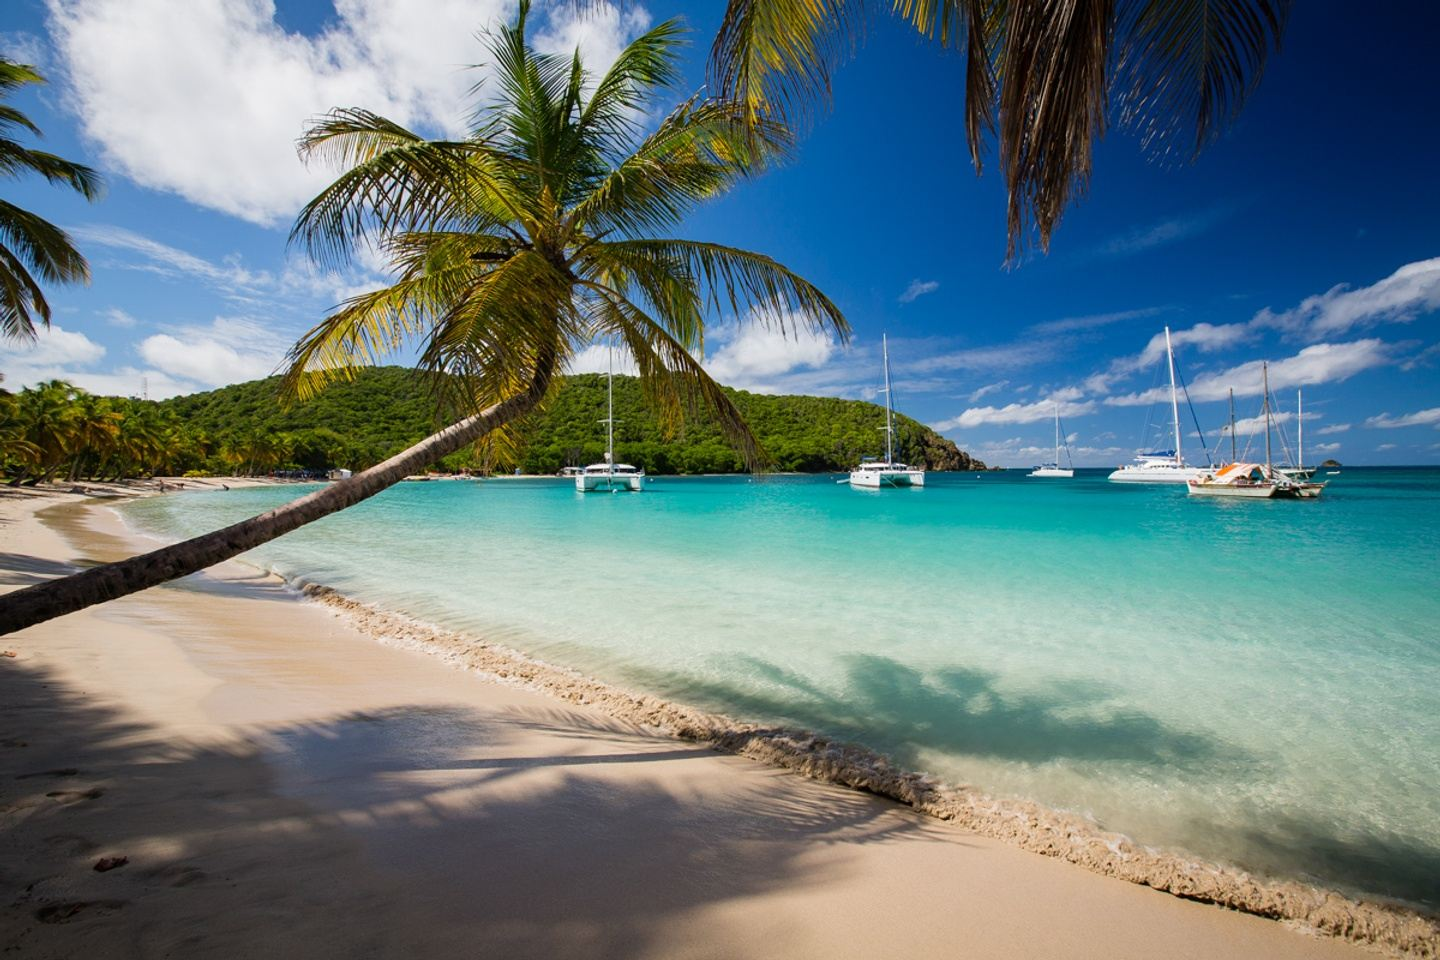 Caribbean adventure: In the footsteps of Jack Sparrow